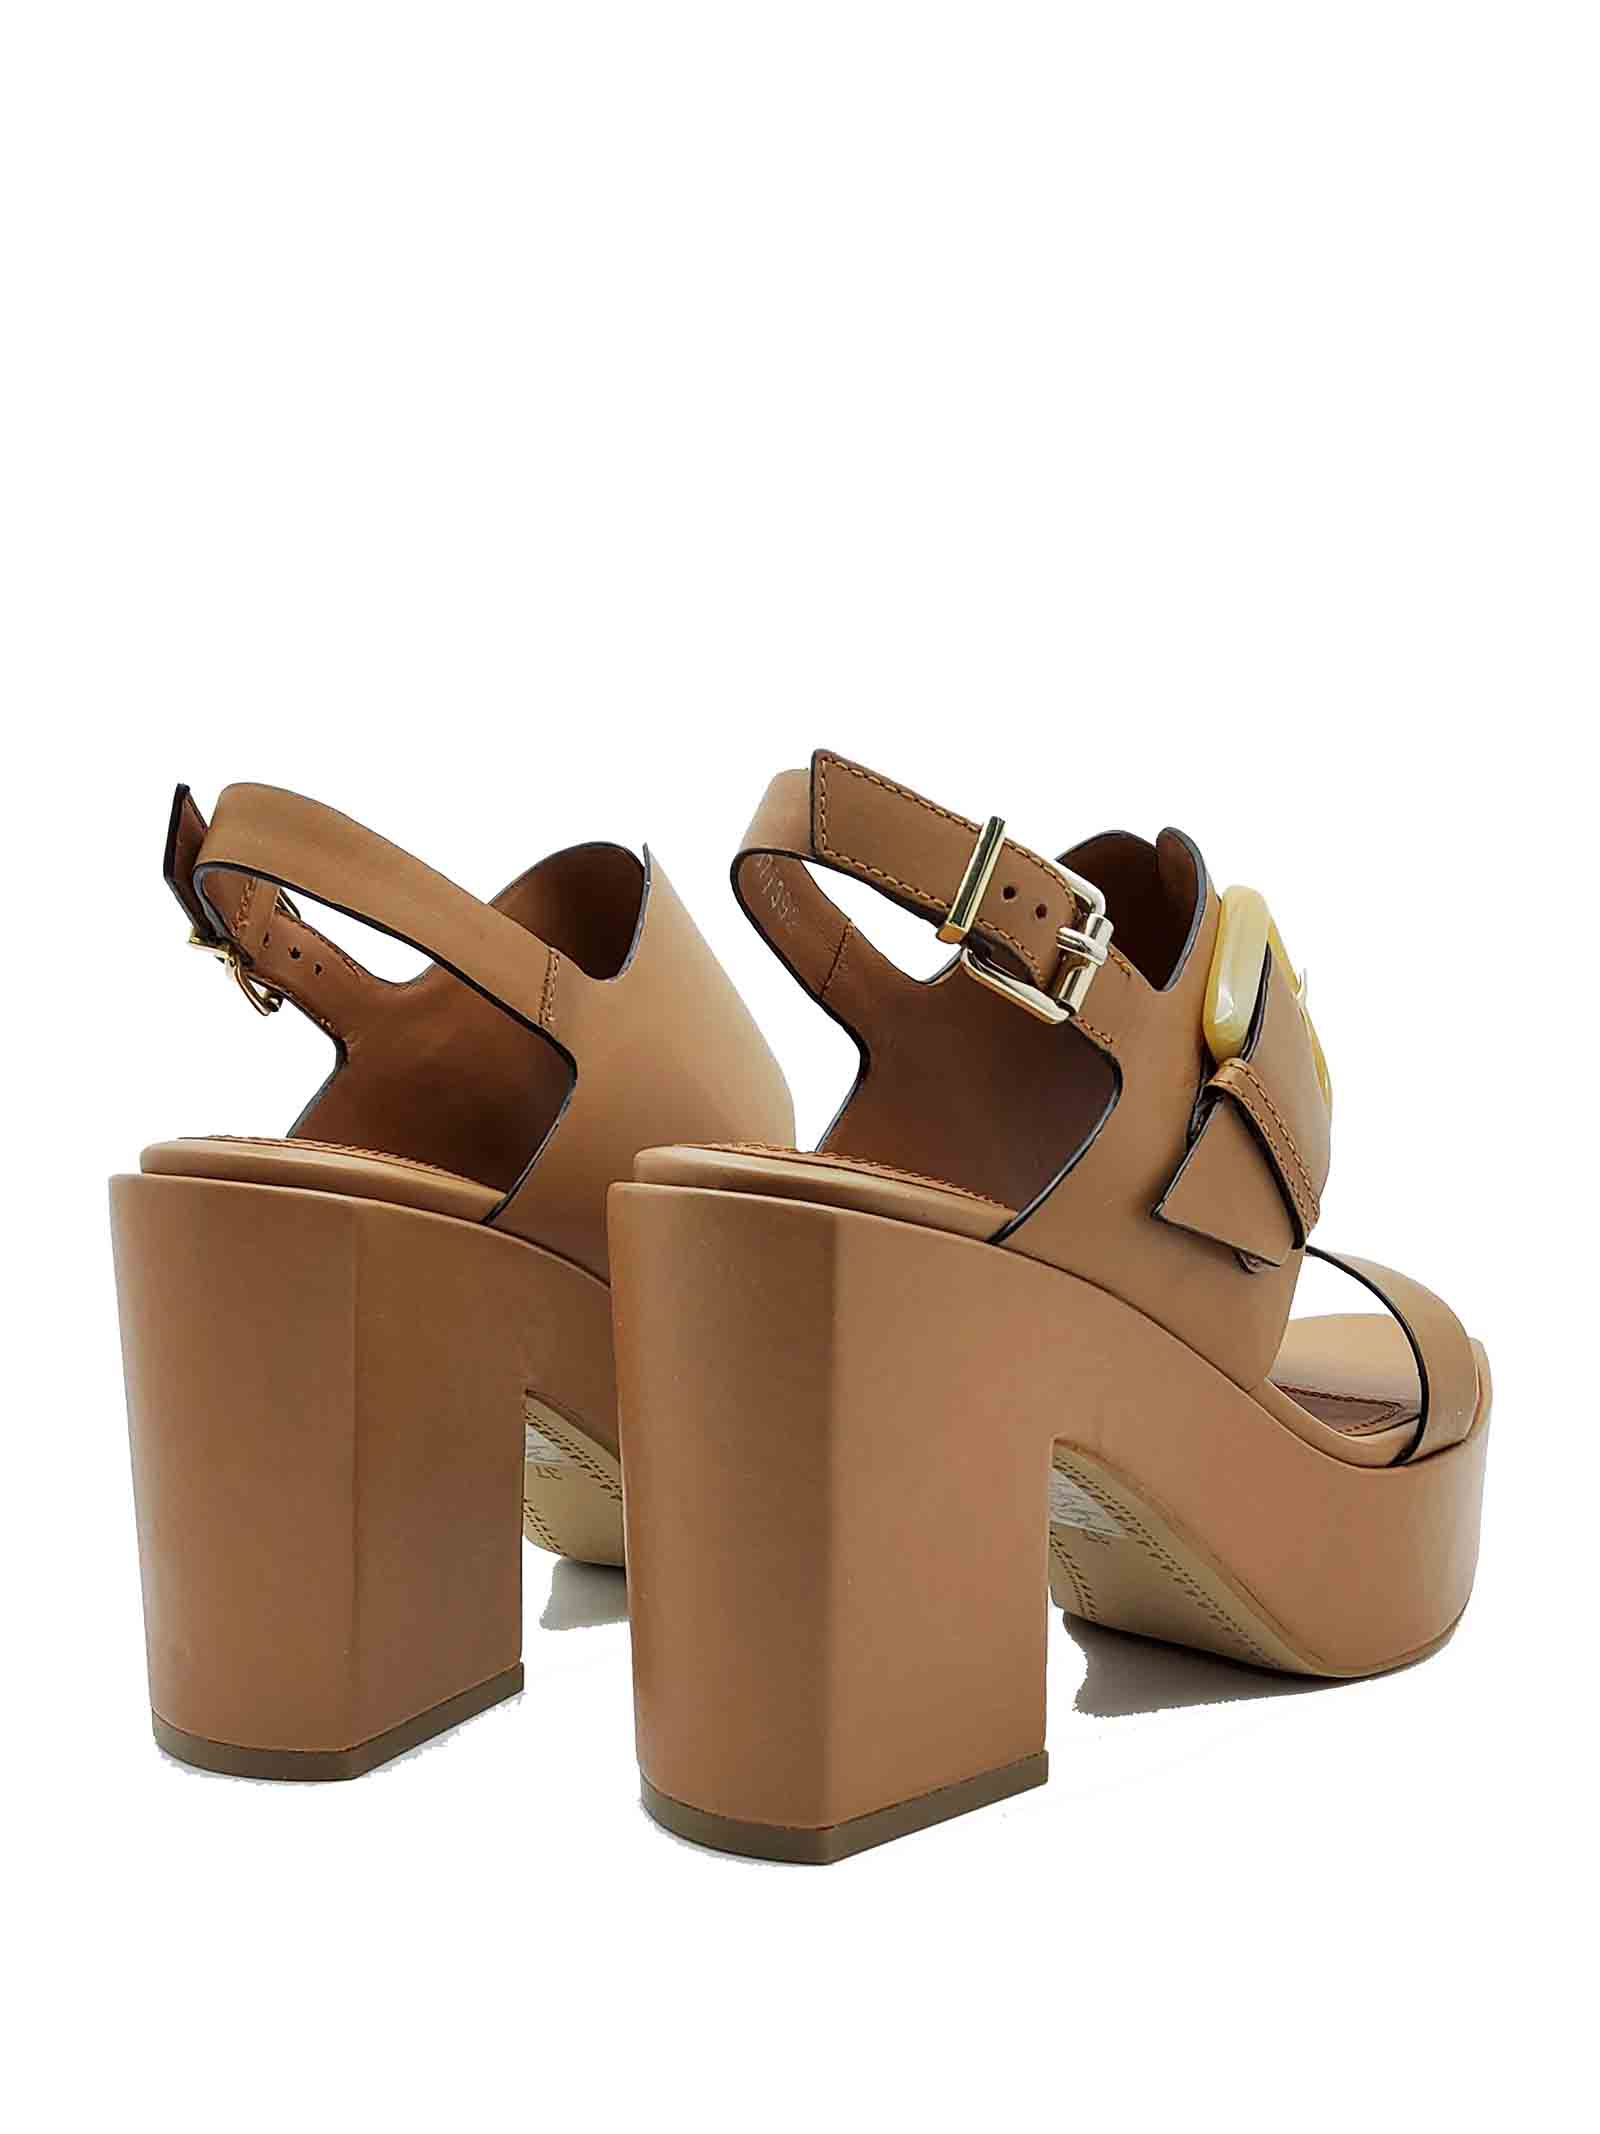 Women's Shoes Leather Sandals with Side Buckle Back Strap and High Wedge Bruno Premi | Wedge Sandals | BB3002X300